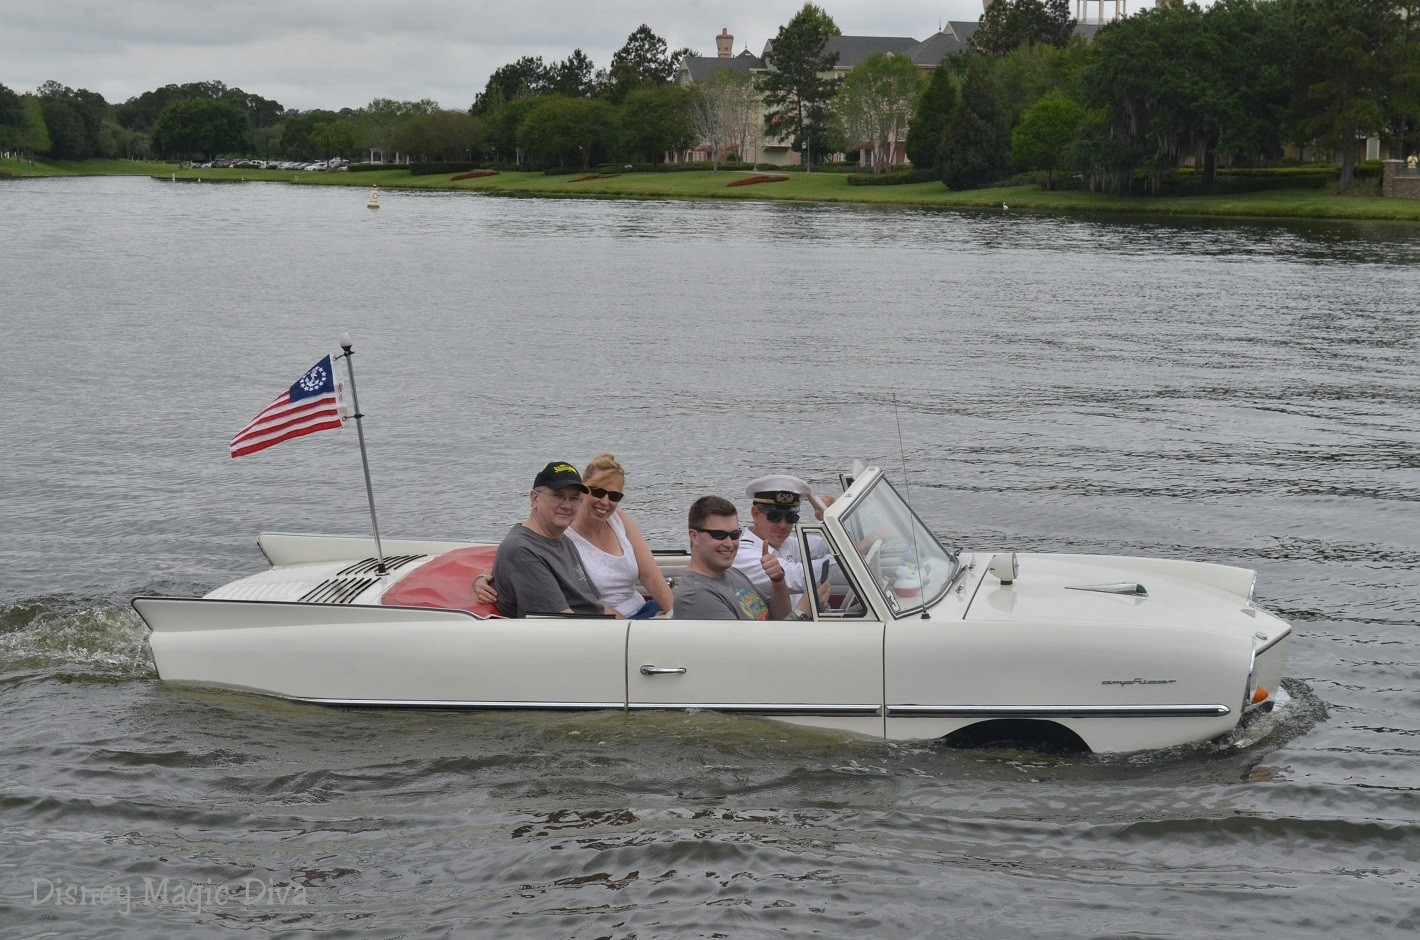 Make a Splash in an Amphicar at Disney Springs